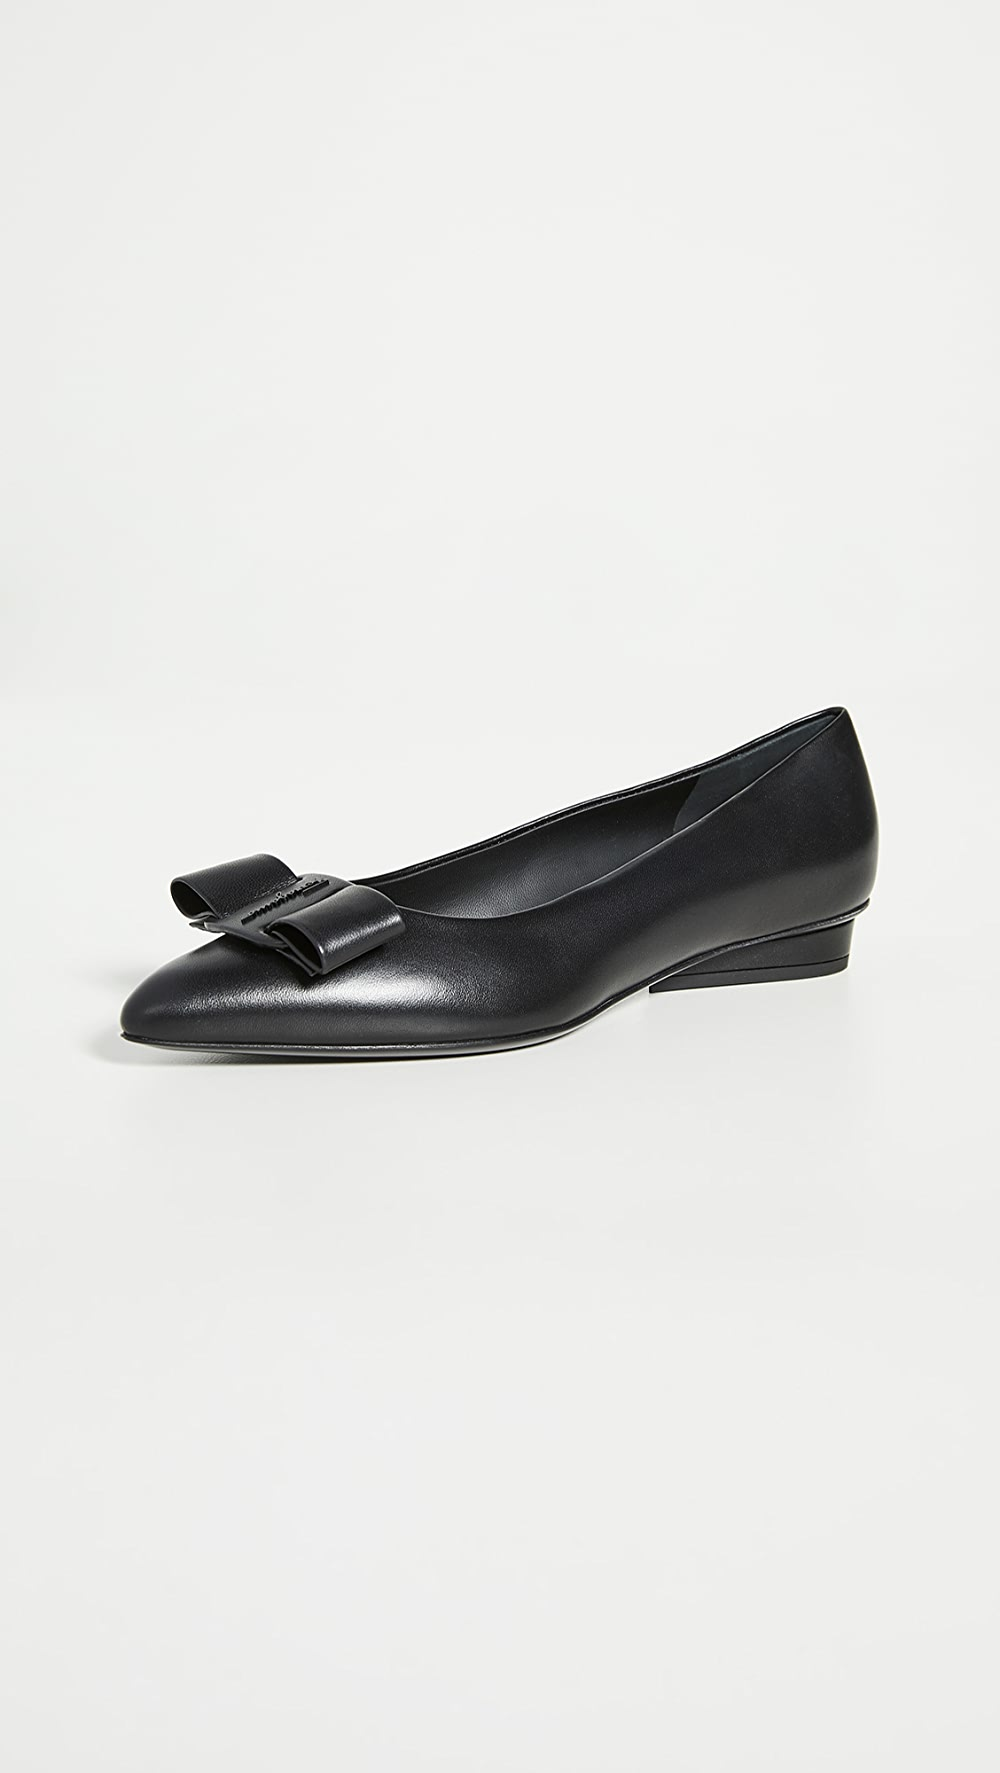 Honest Salvatore Ferragamo - Viva Flats Catalogues Will Be Sent Upon Request